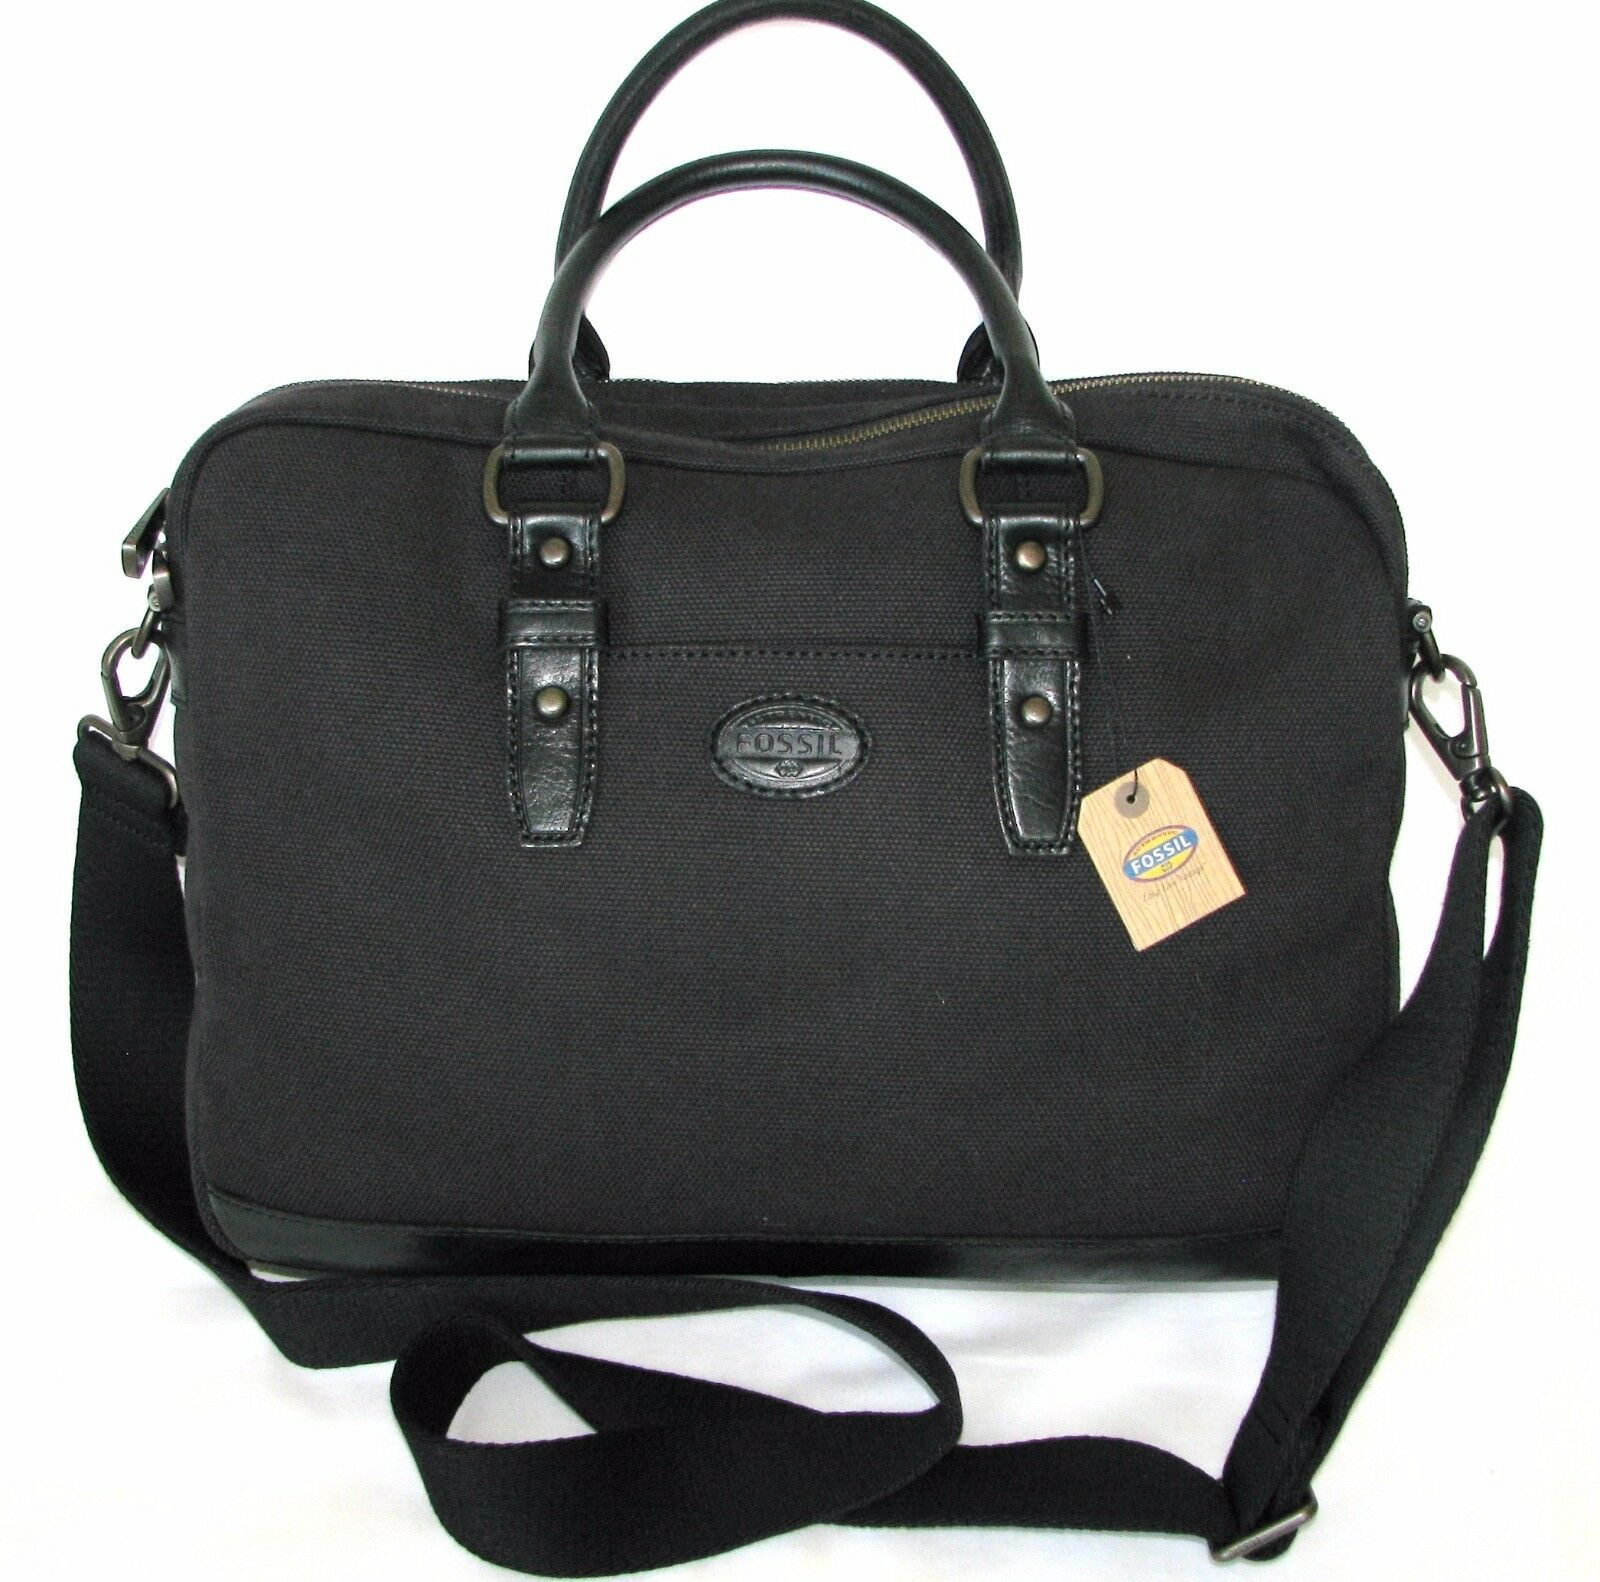 Fossil Men s Black Dillon Canvas Simple Work Bag Briefcase Messenger ... 9122f37b1a56